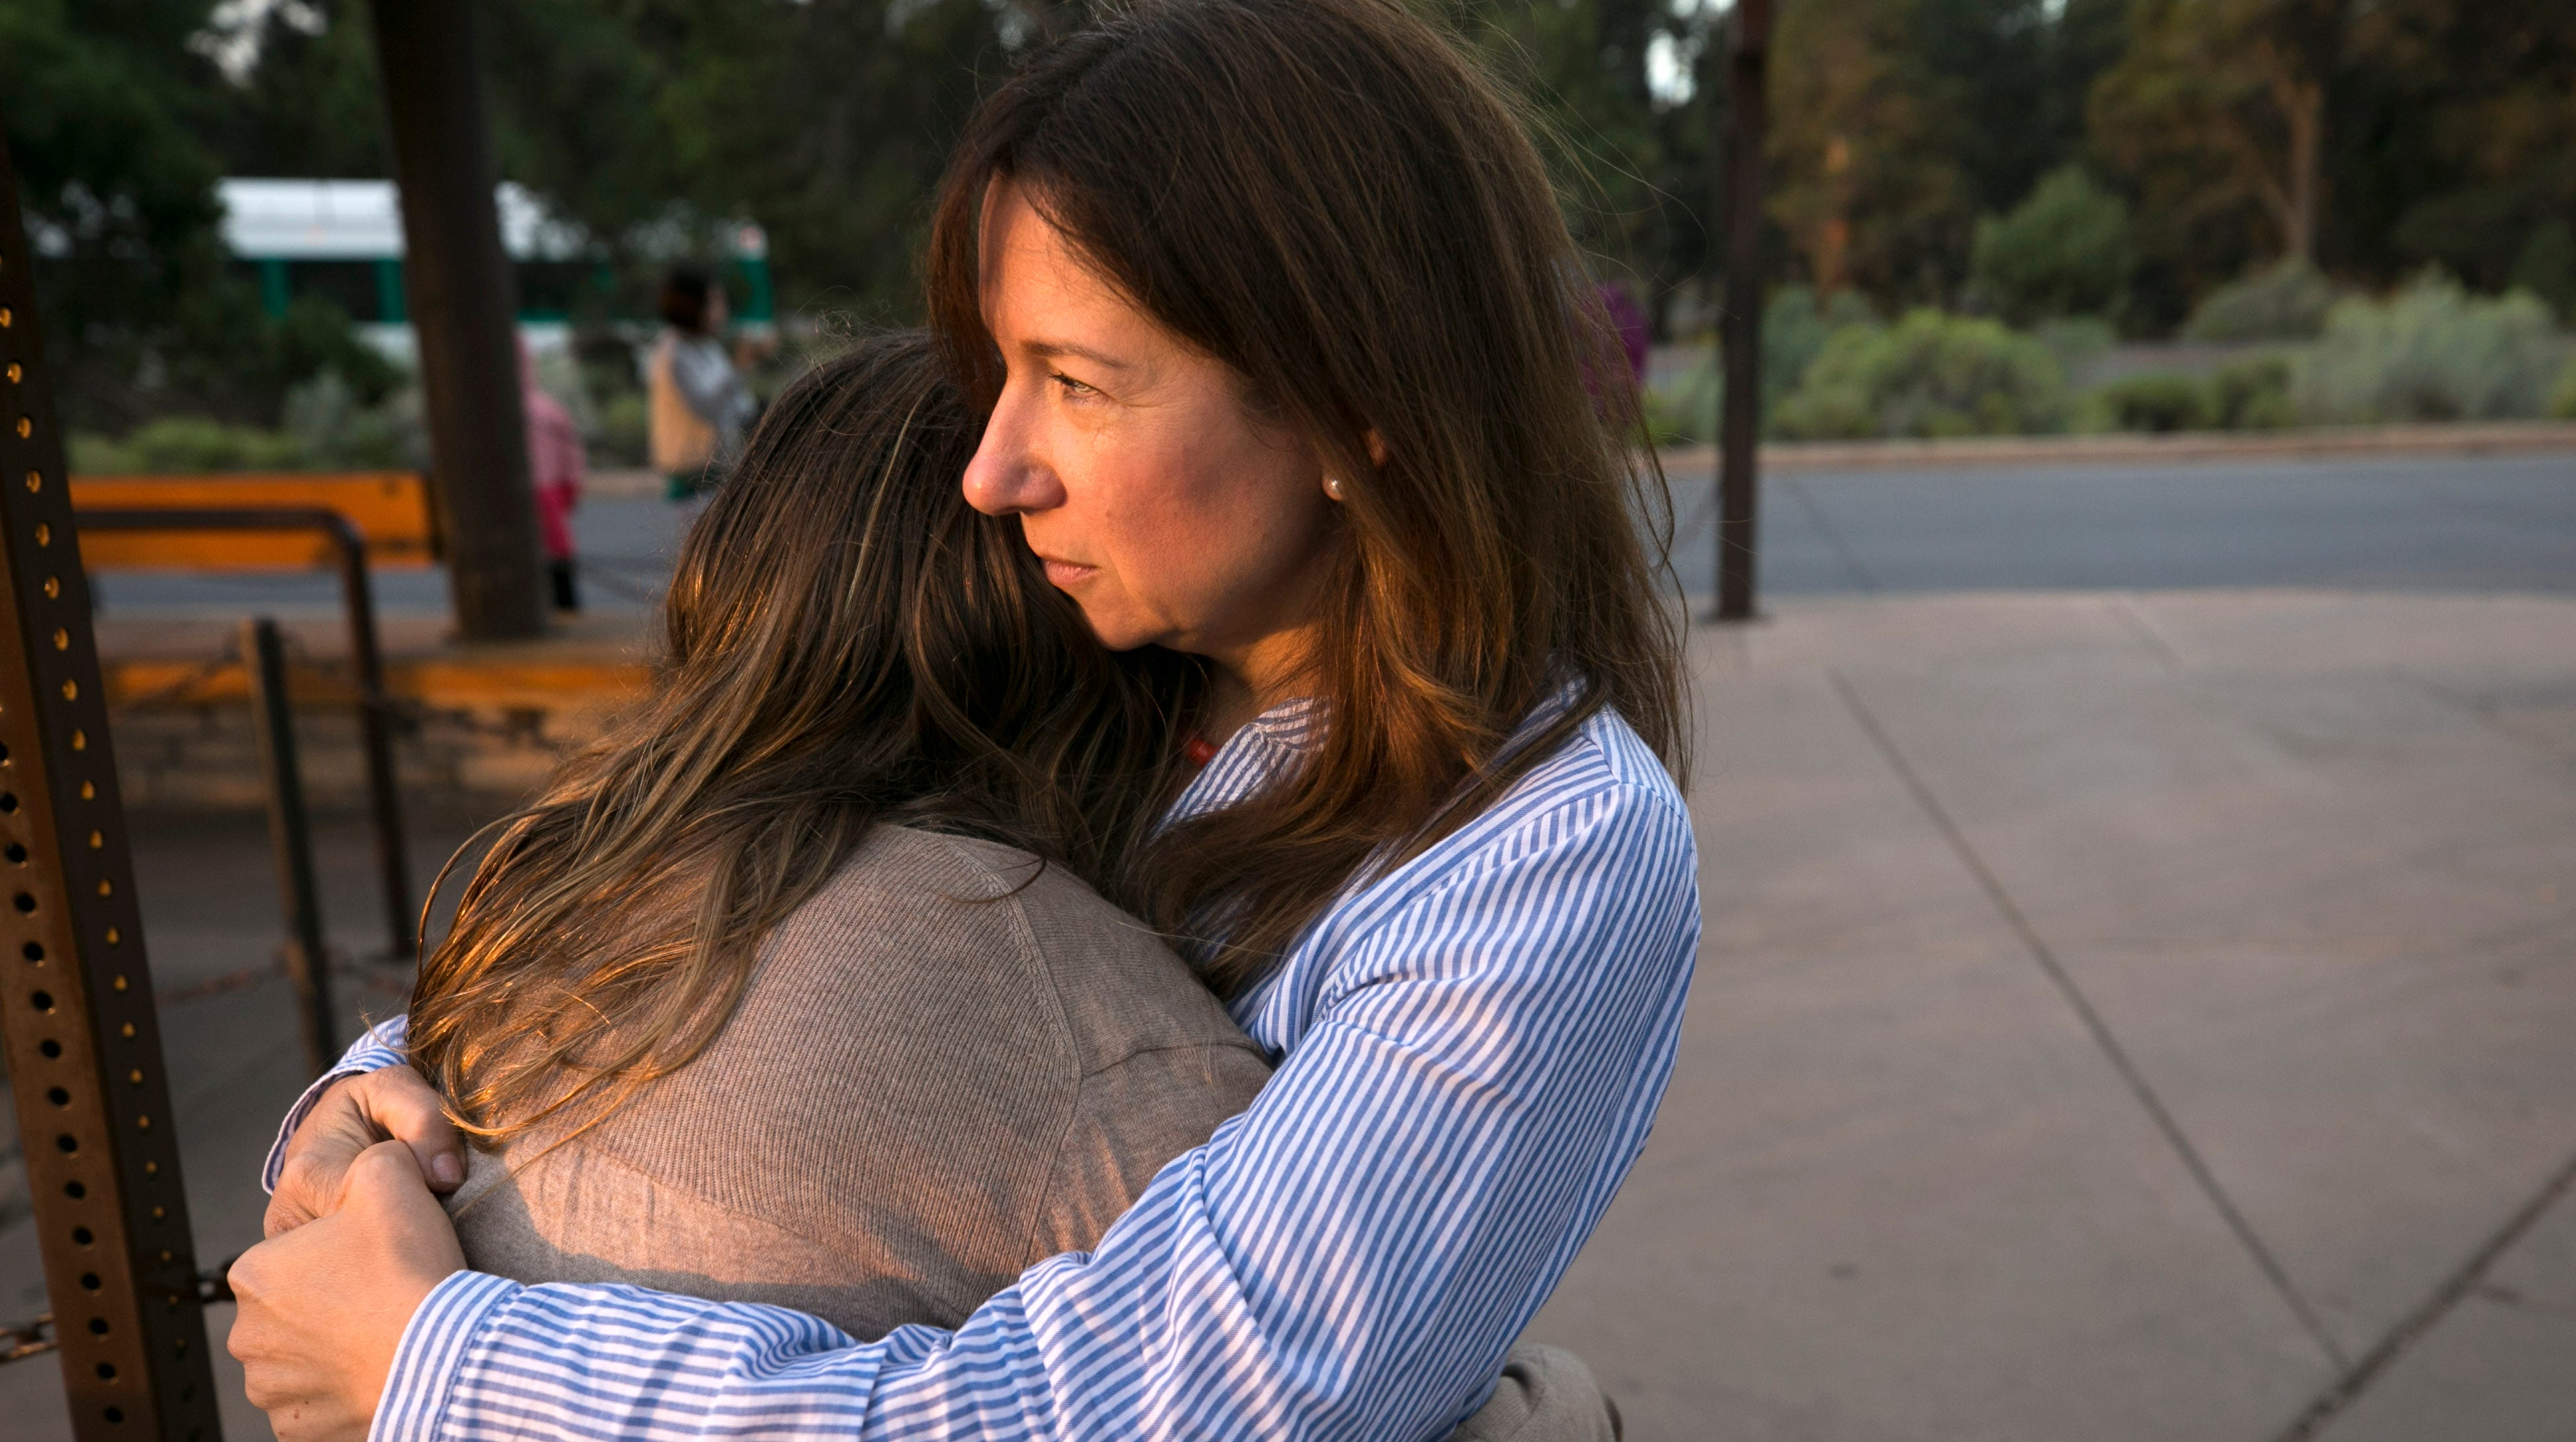 Laura Trujillo of Cincinnati, Ohio, and her daughter, Lucy Faherty, 12, hug while waiting for a Grand Canyon National Park shuttle bus to take them to the Trailview Overlook on the south rim of the Grand Canyon in Grand Canyon National Park.